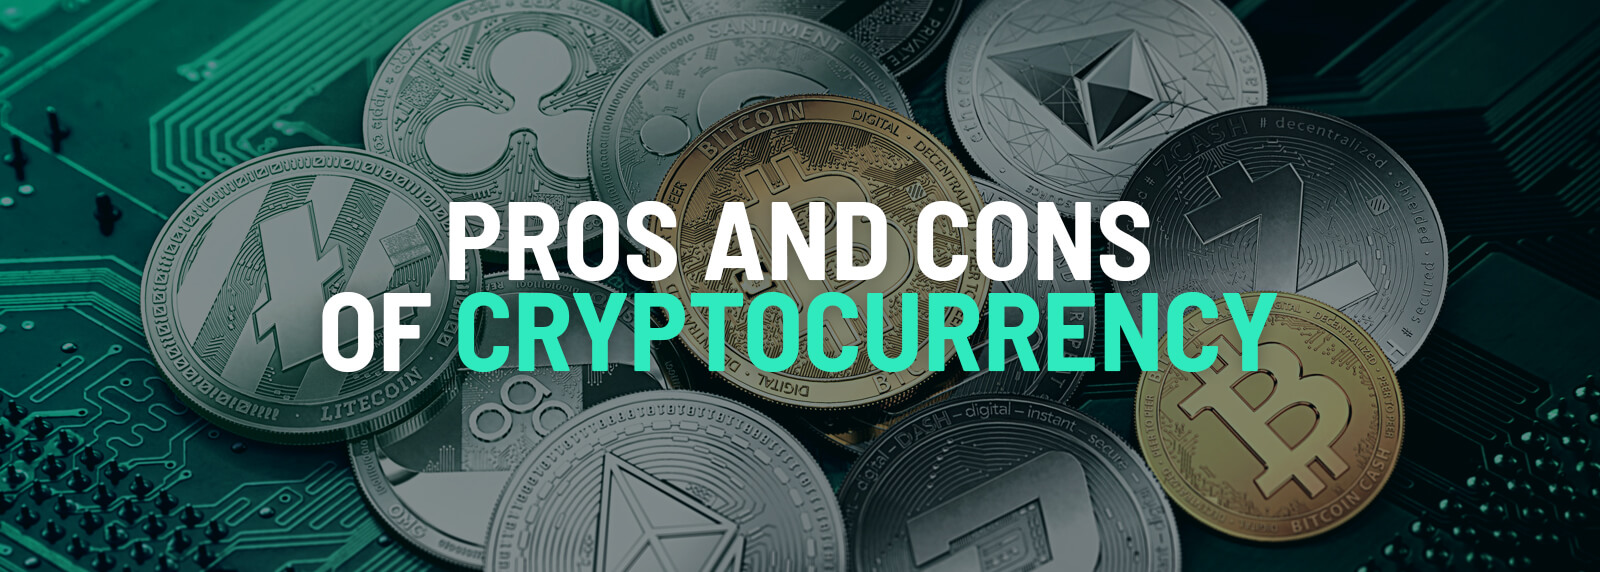 pros-cons-cryptocurrency.jpg